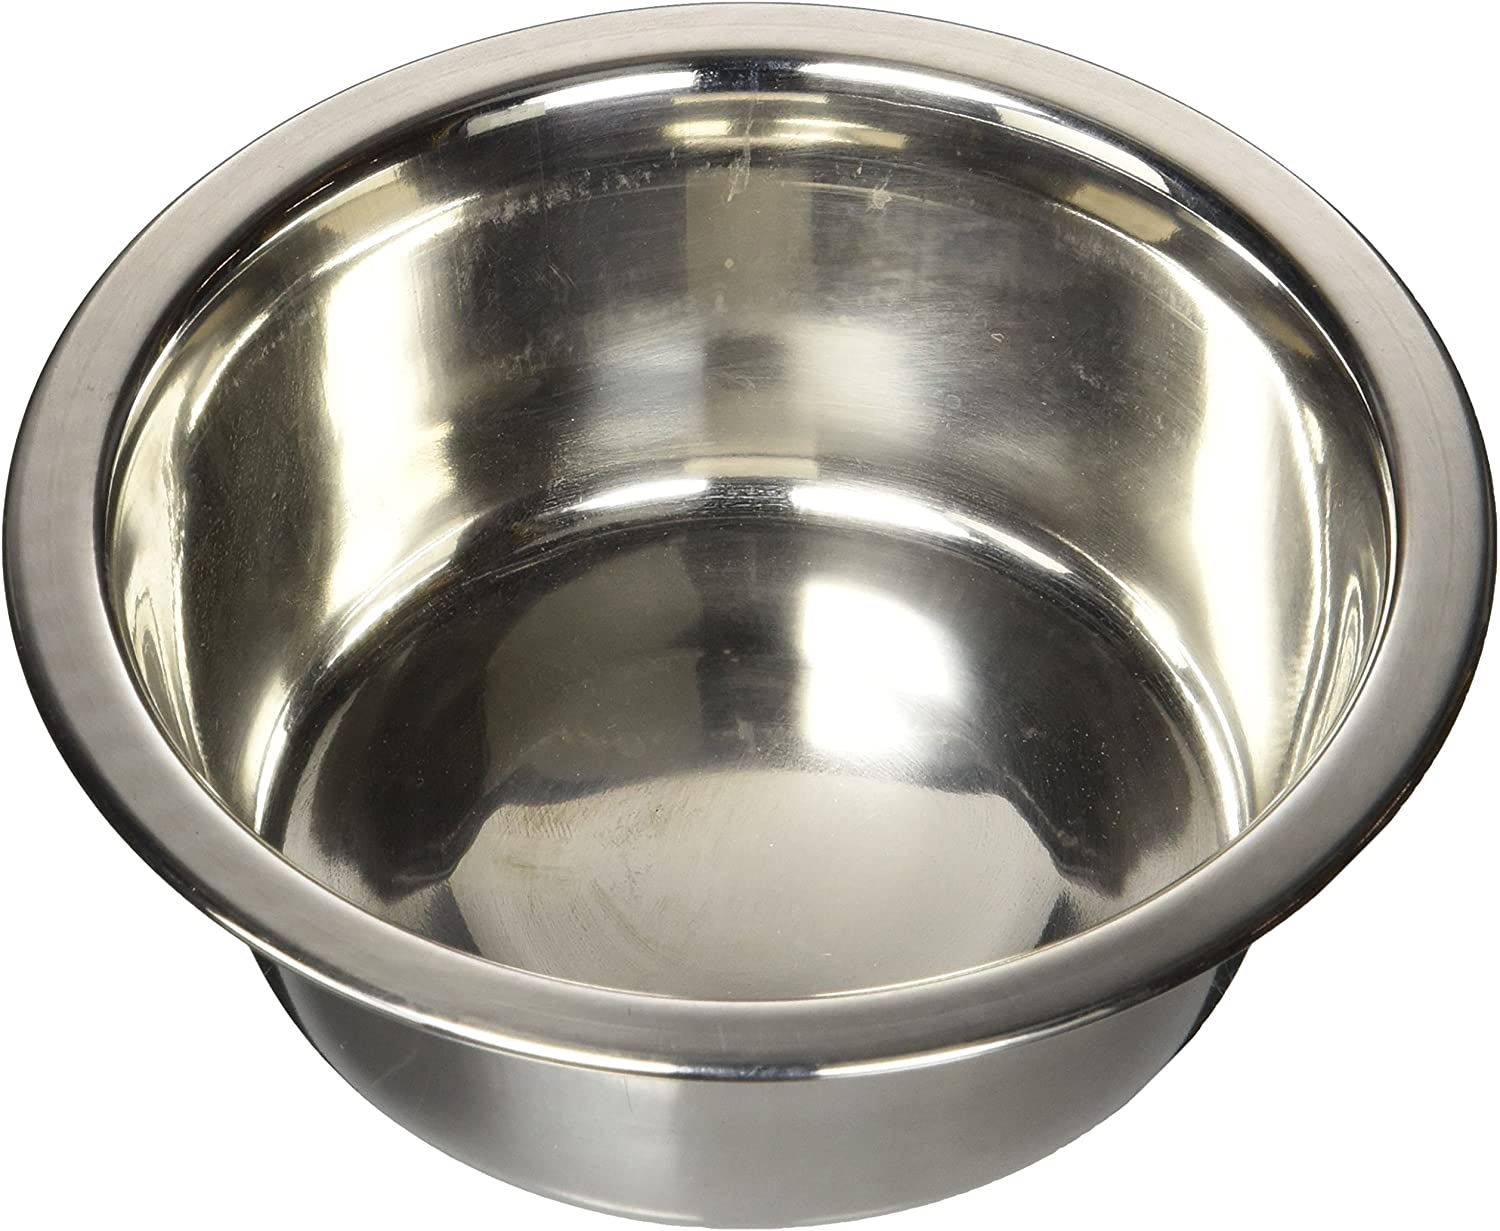 OurPets Eat! Stainless Steel Bowl, 96-oz